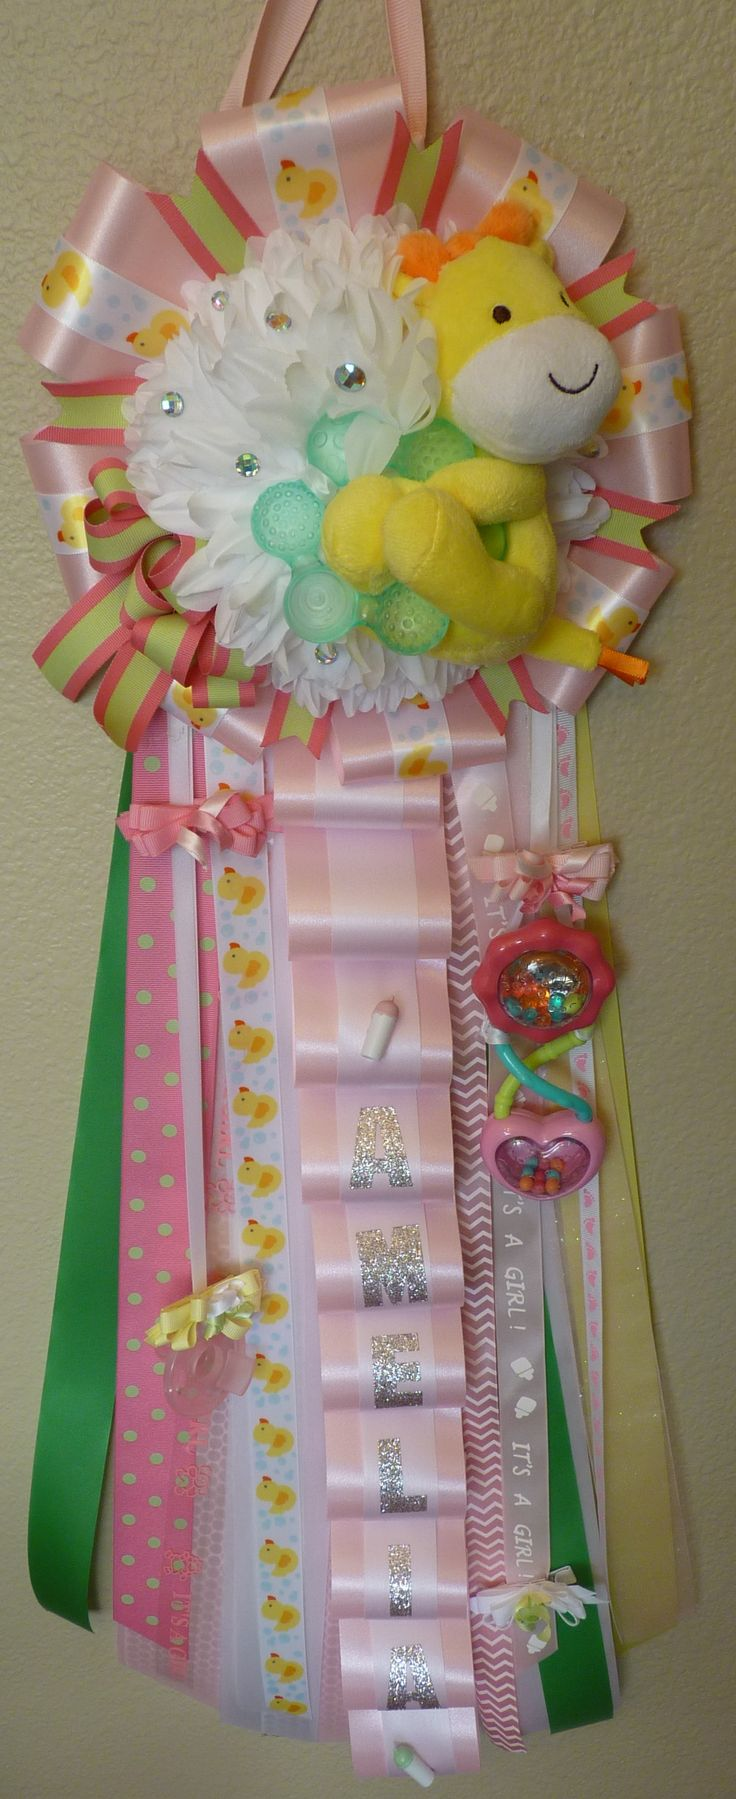 Welcome Baby Girl Mum. Great for a baby shower gift or hospital door decor. Visit www.peachykeenmums.com